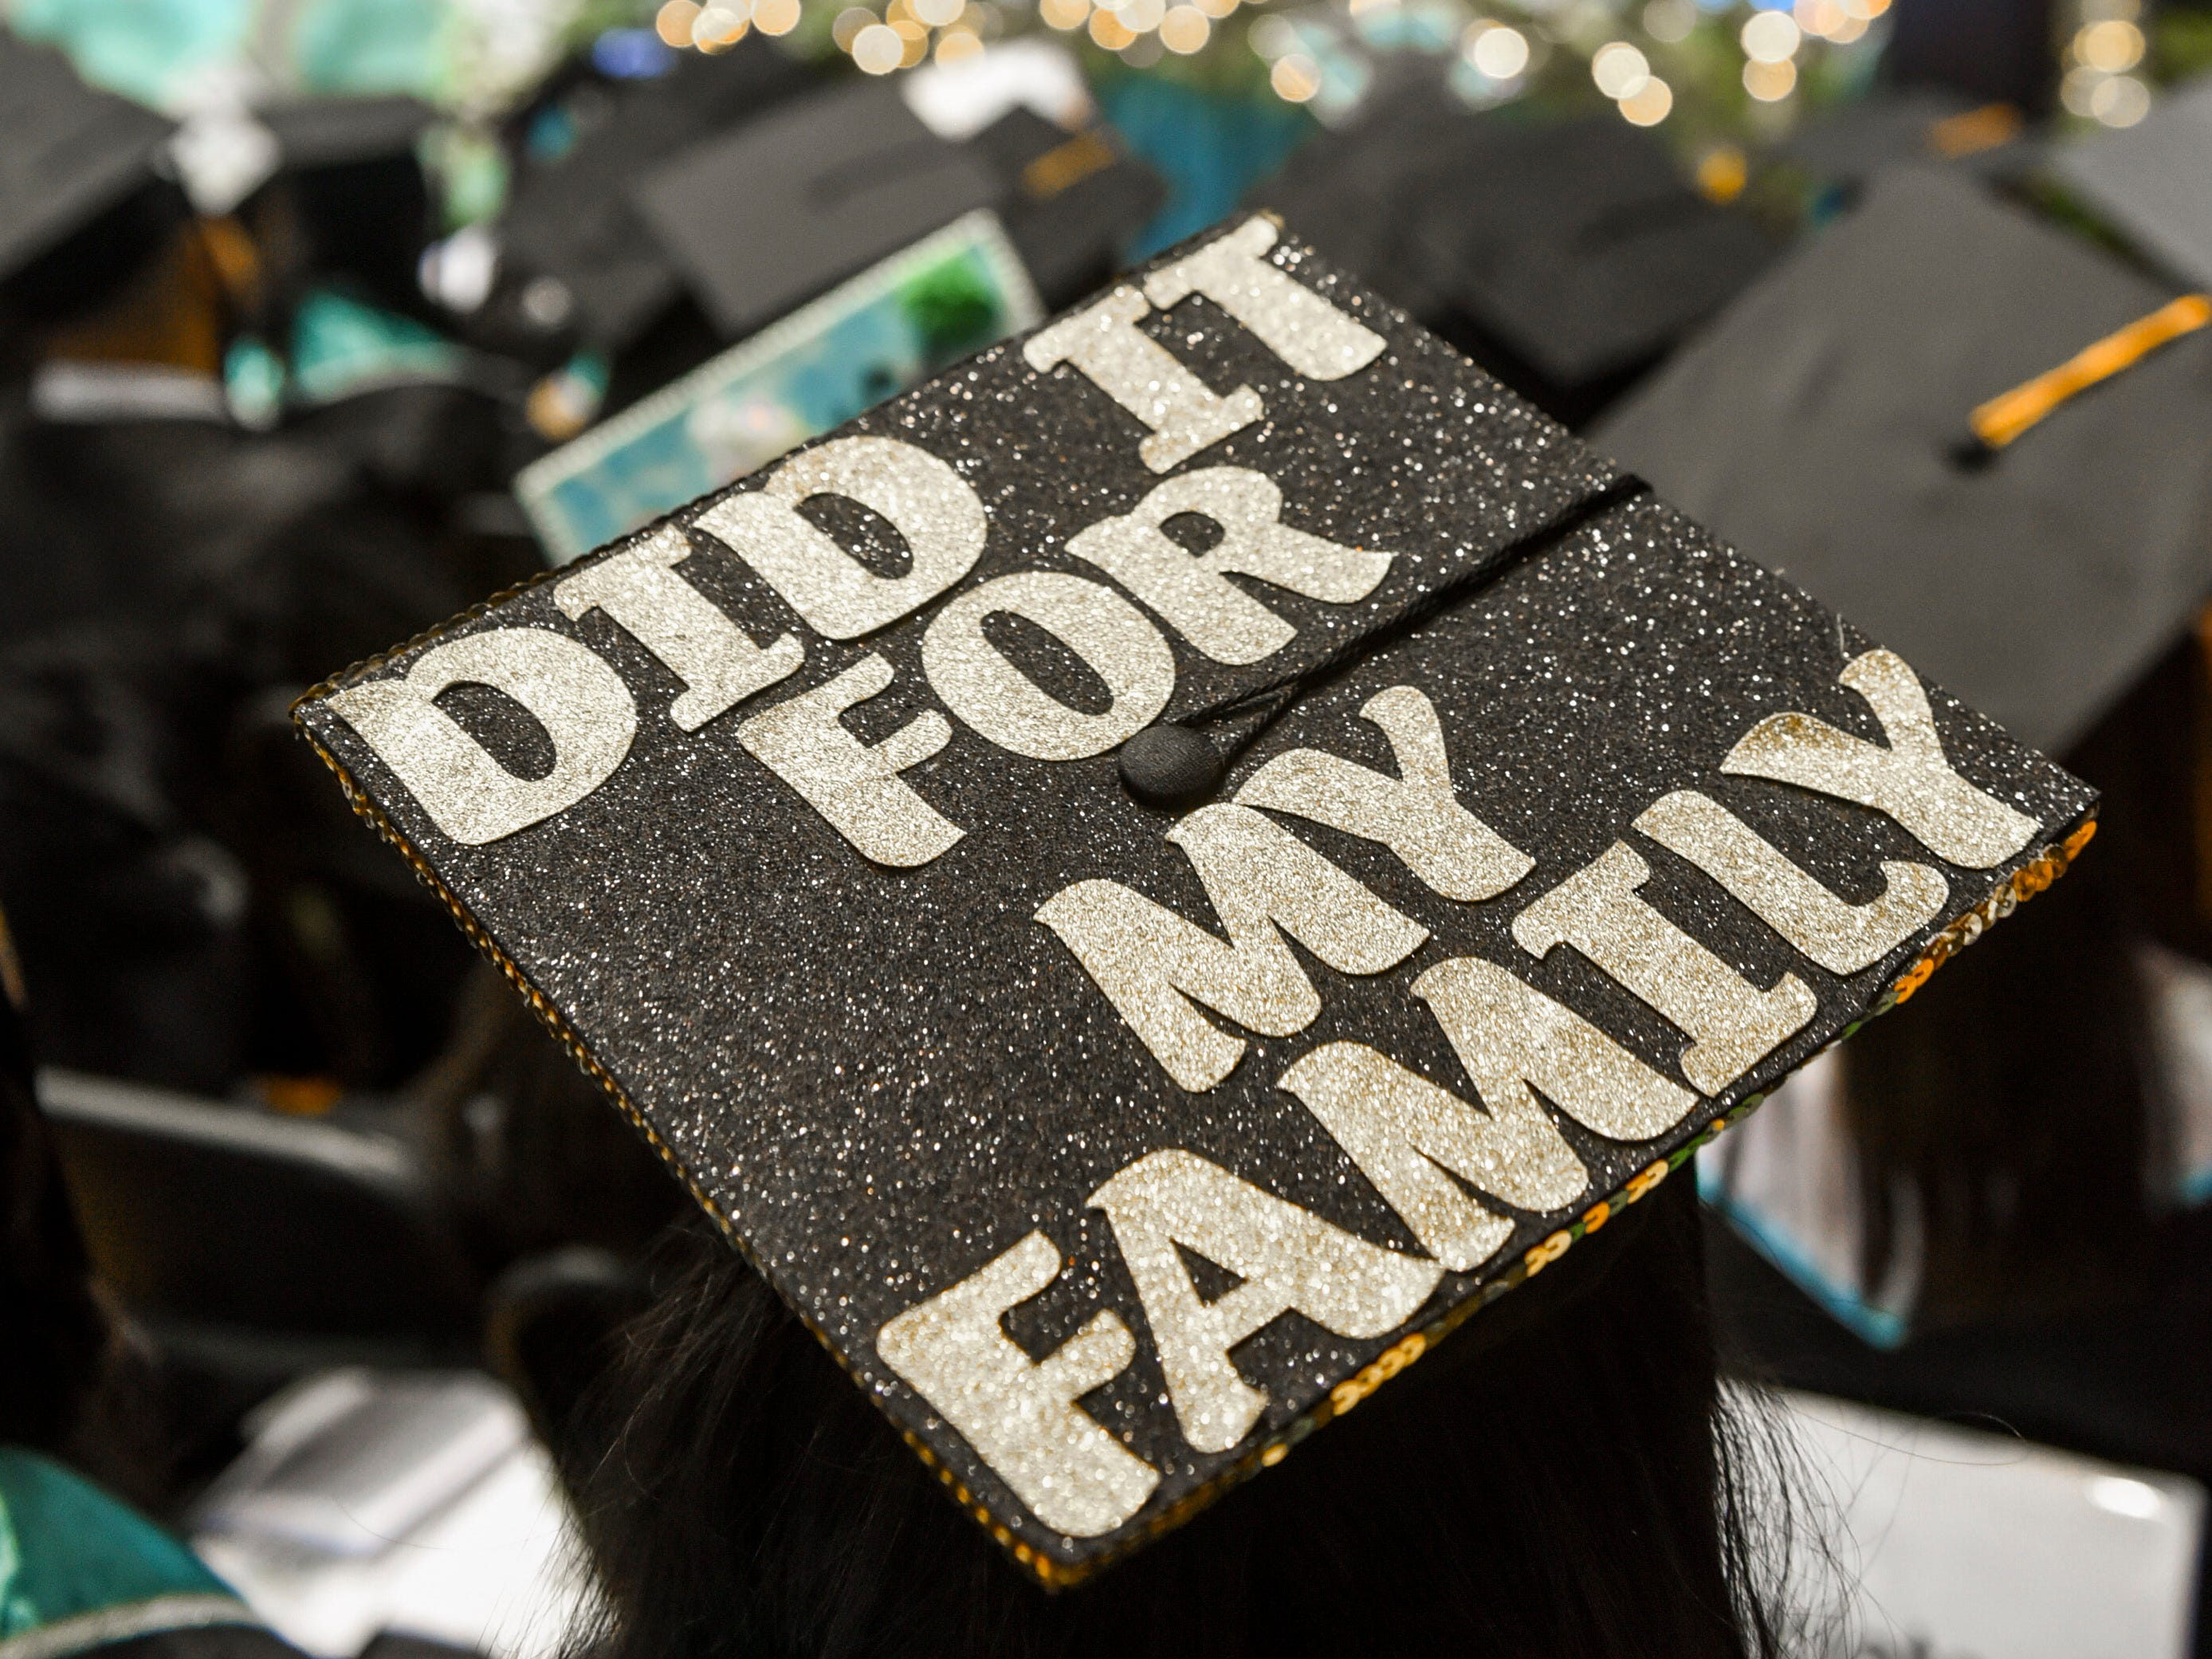 Various messages were conveyed by graduates through the artwork expressed on their caps during Guam Community College's commencement exercise at the University of Guam in Mangilao on Friday, May 10, 2019. The institution conferred a total of 435 degrees, certificates, and/or diplomas to 357 graduates at the ceremony attended by hundreds of family members, friends and other well wishers.